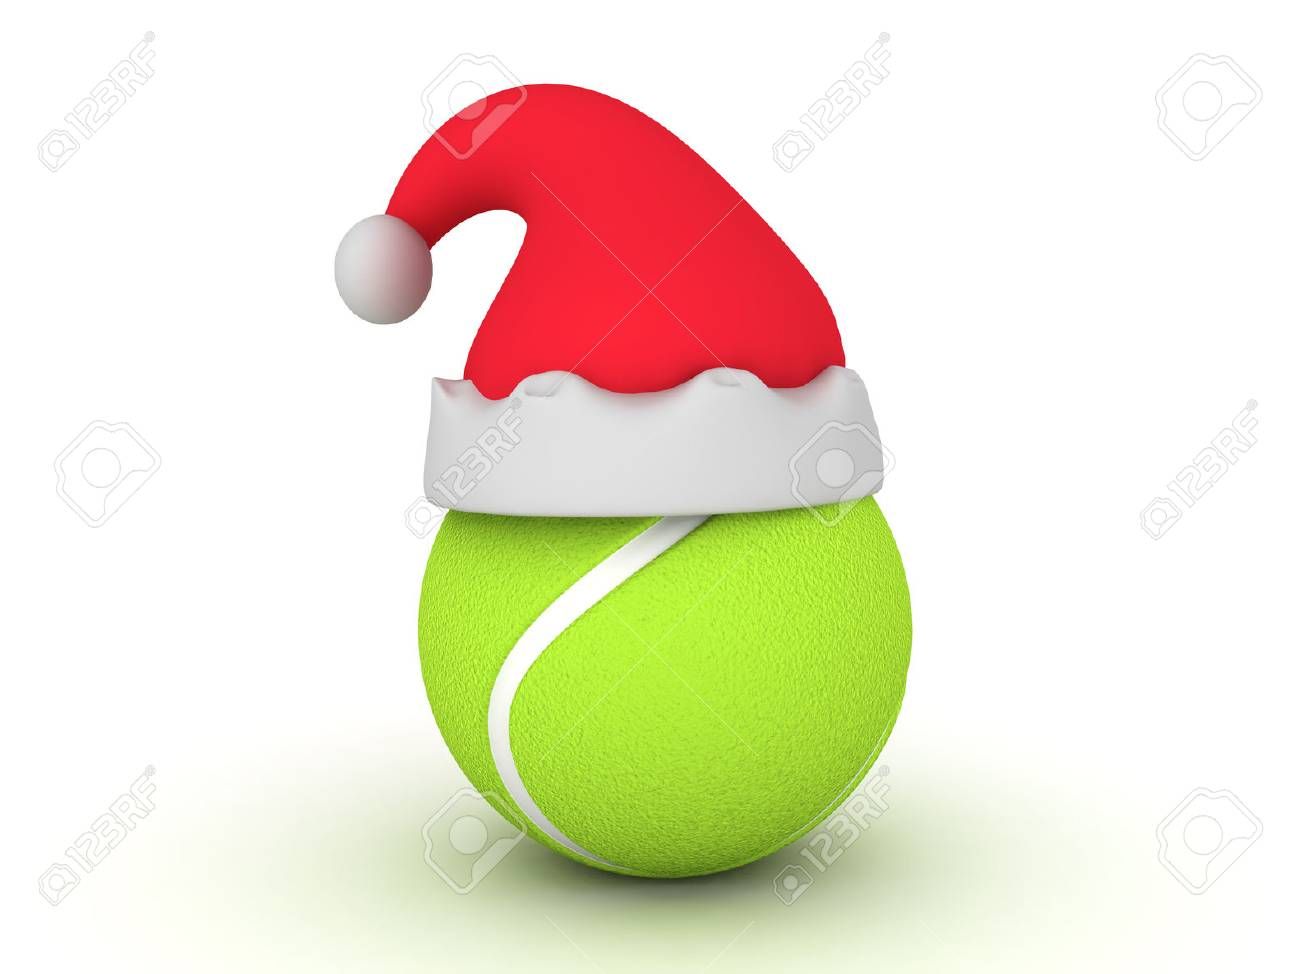 136769bb58315 3D illustration of tennis ball with christmas hat on top of it. Isolated on  white